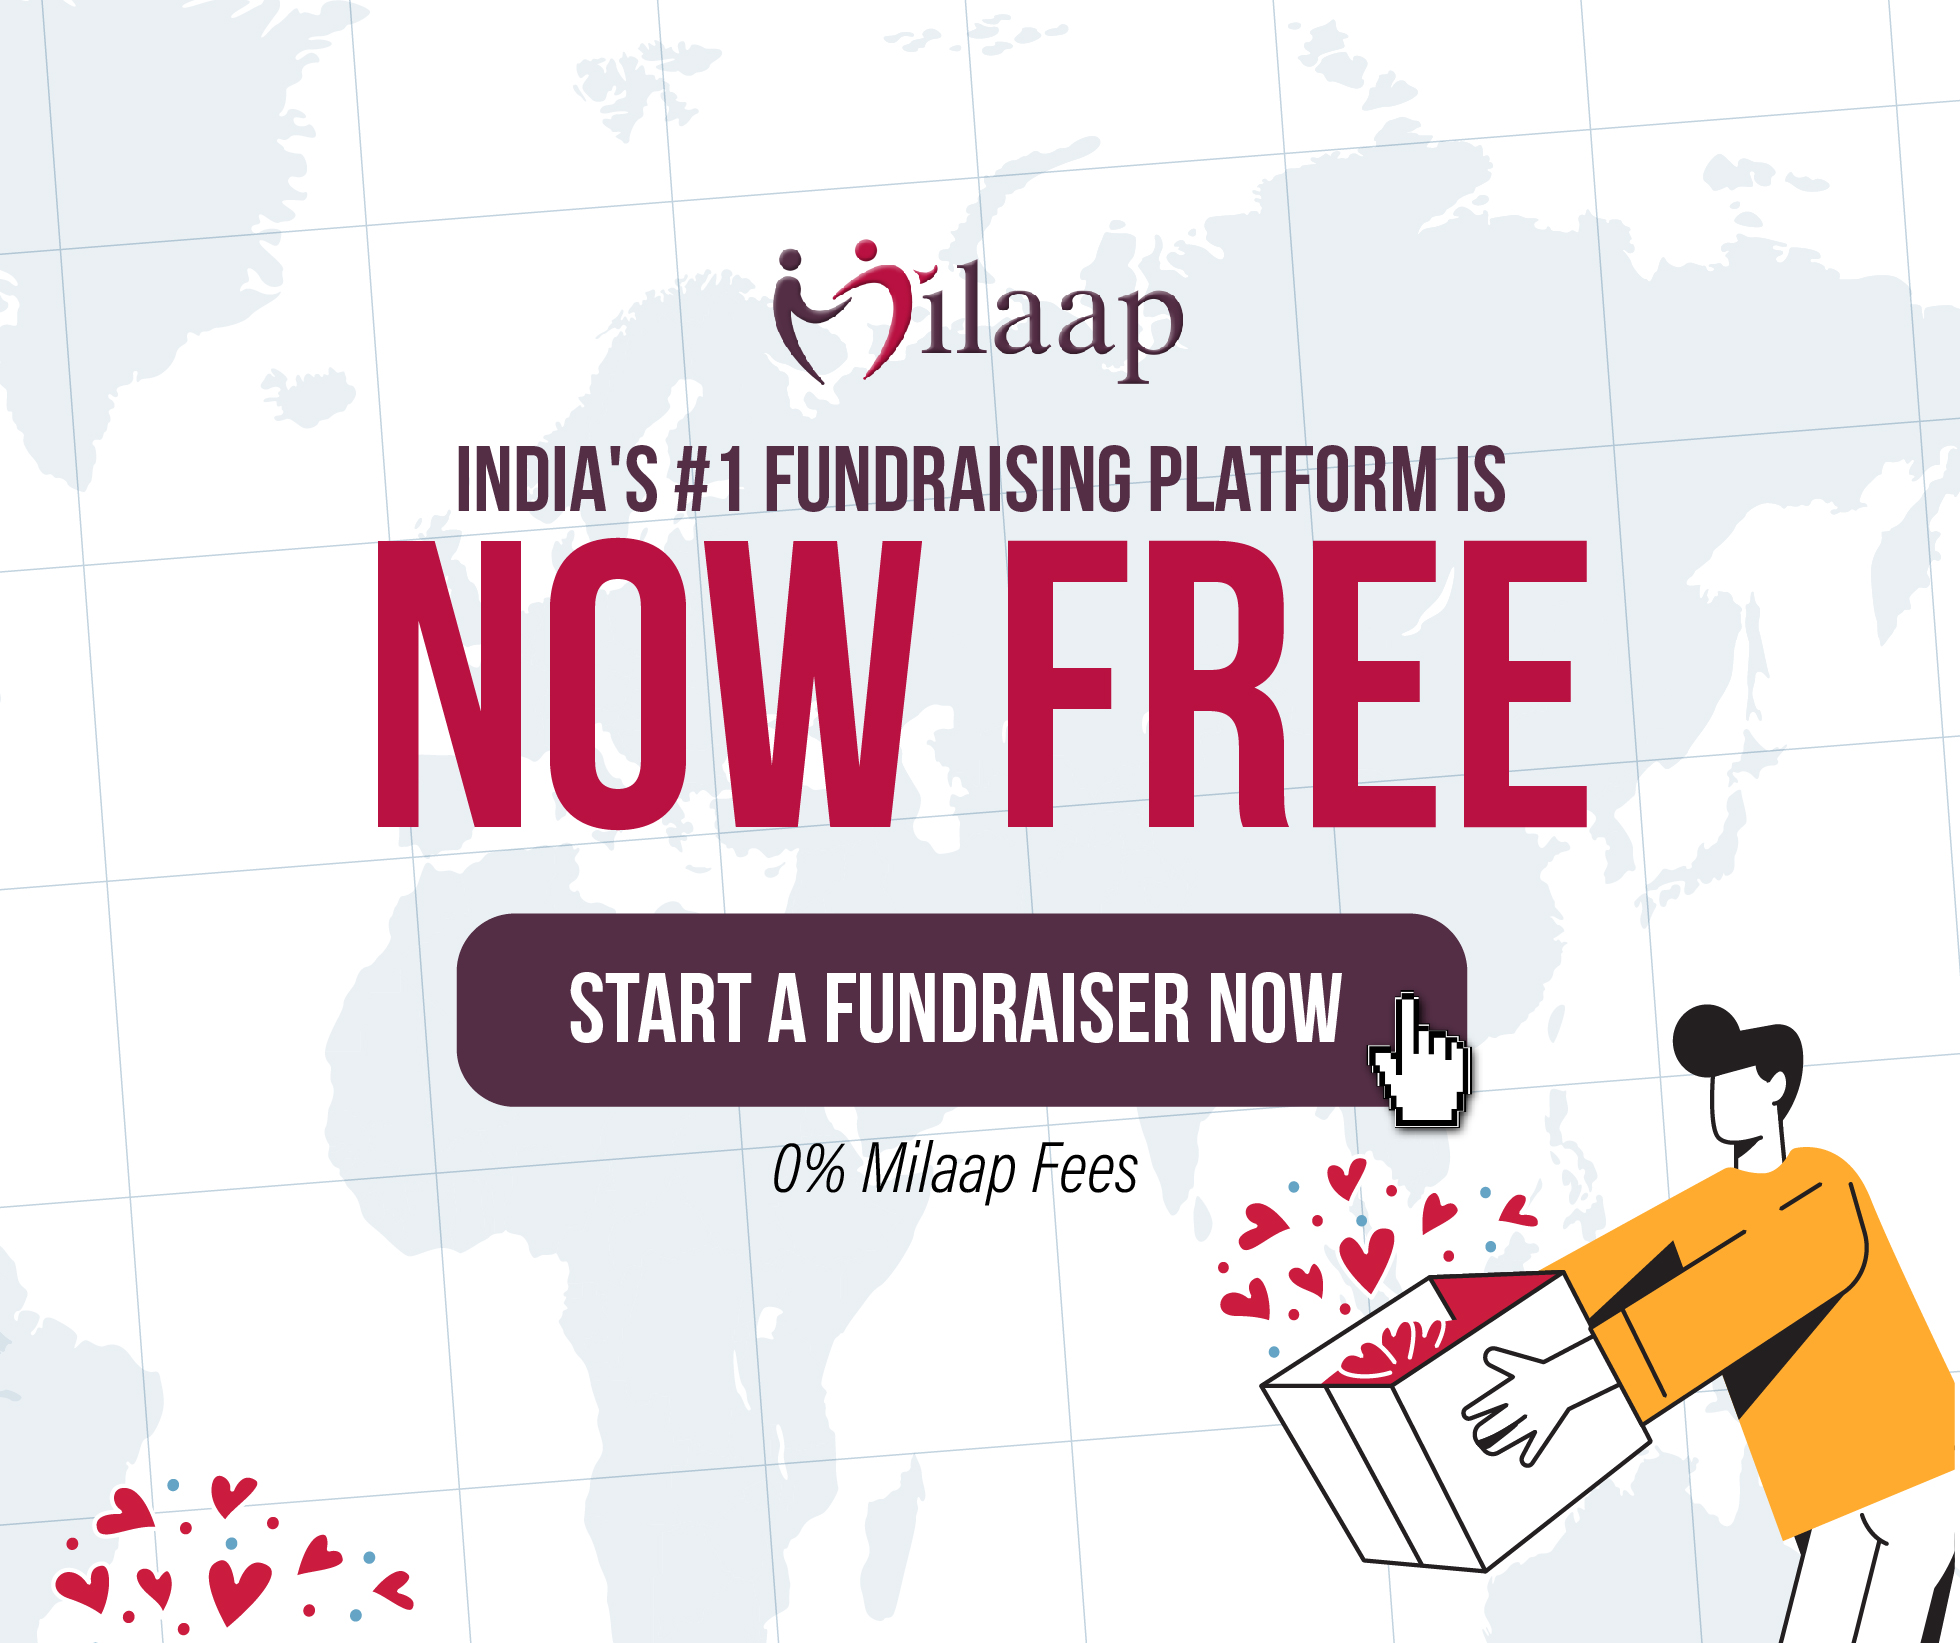 Leading online crowdfunding company Milaap has successfully completed ten years